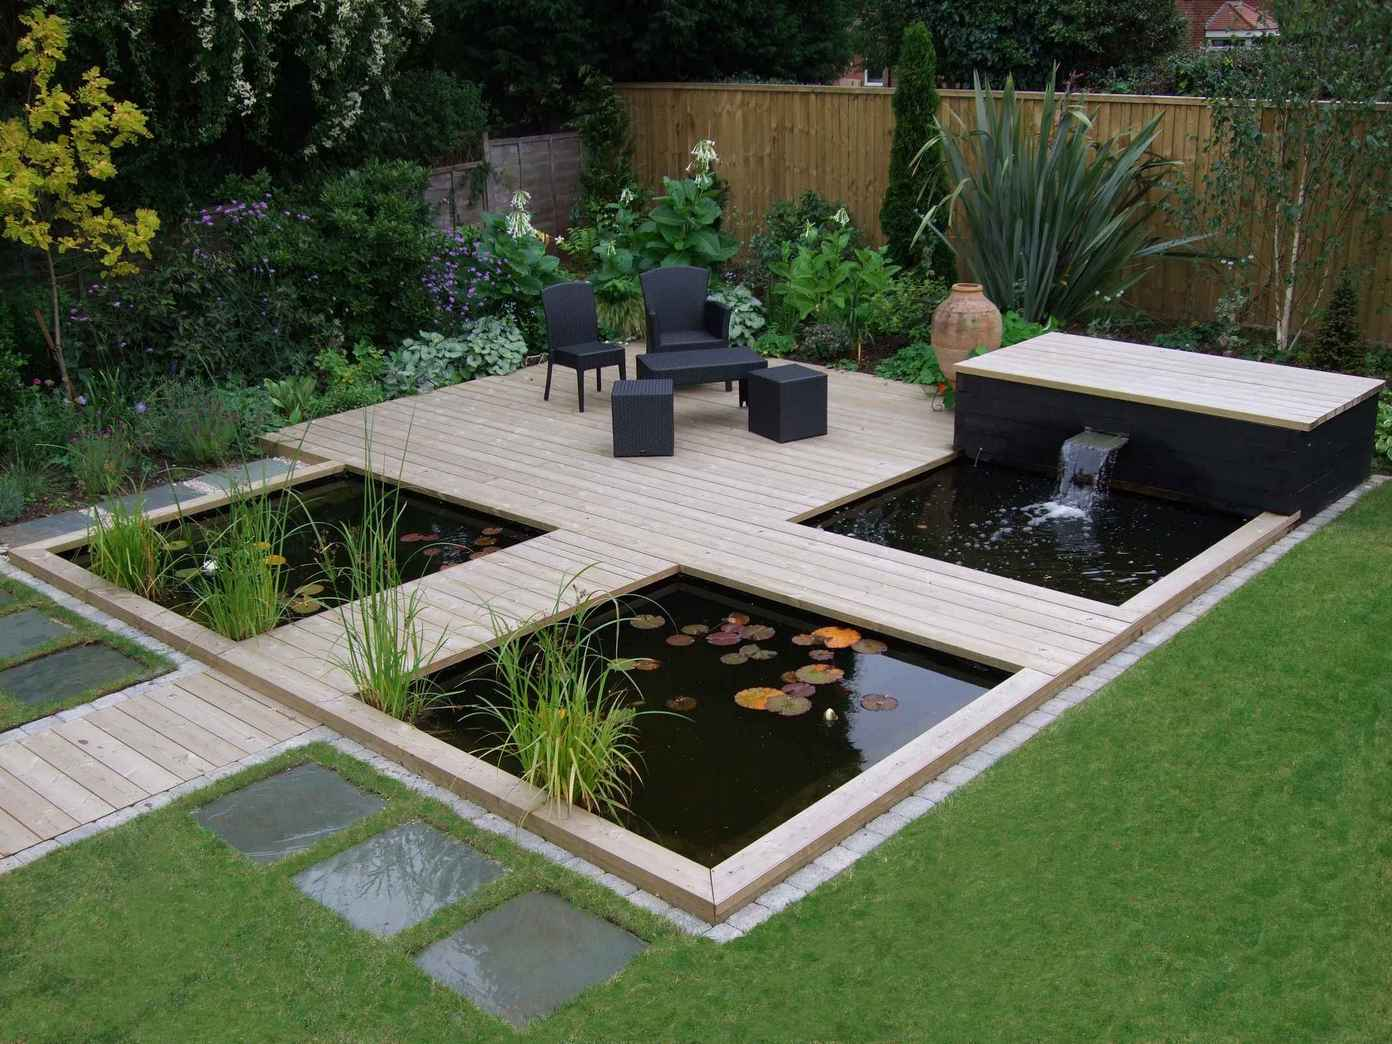 16 attractive garden pond designs that everyone should see. Black Bedroom Furniture Sets. Home Design Ideas